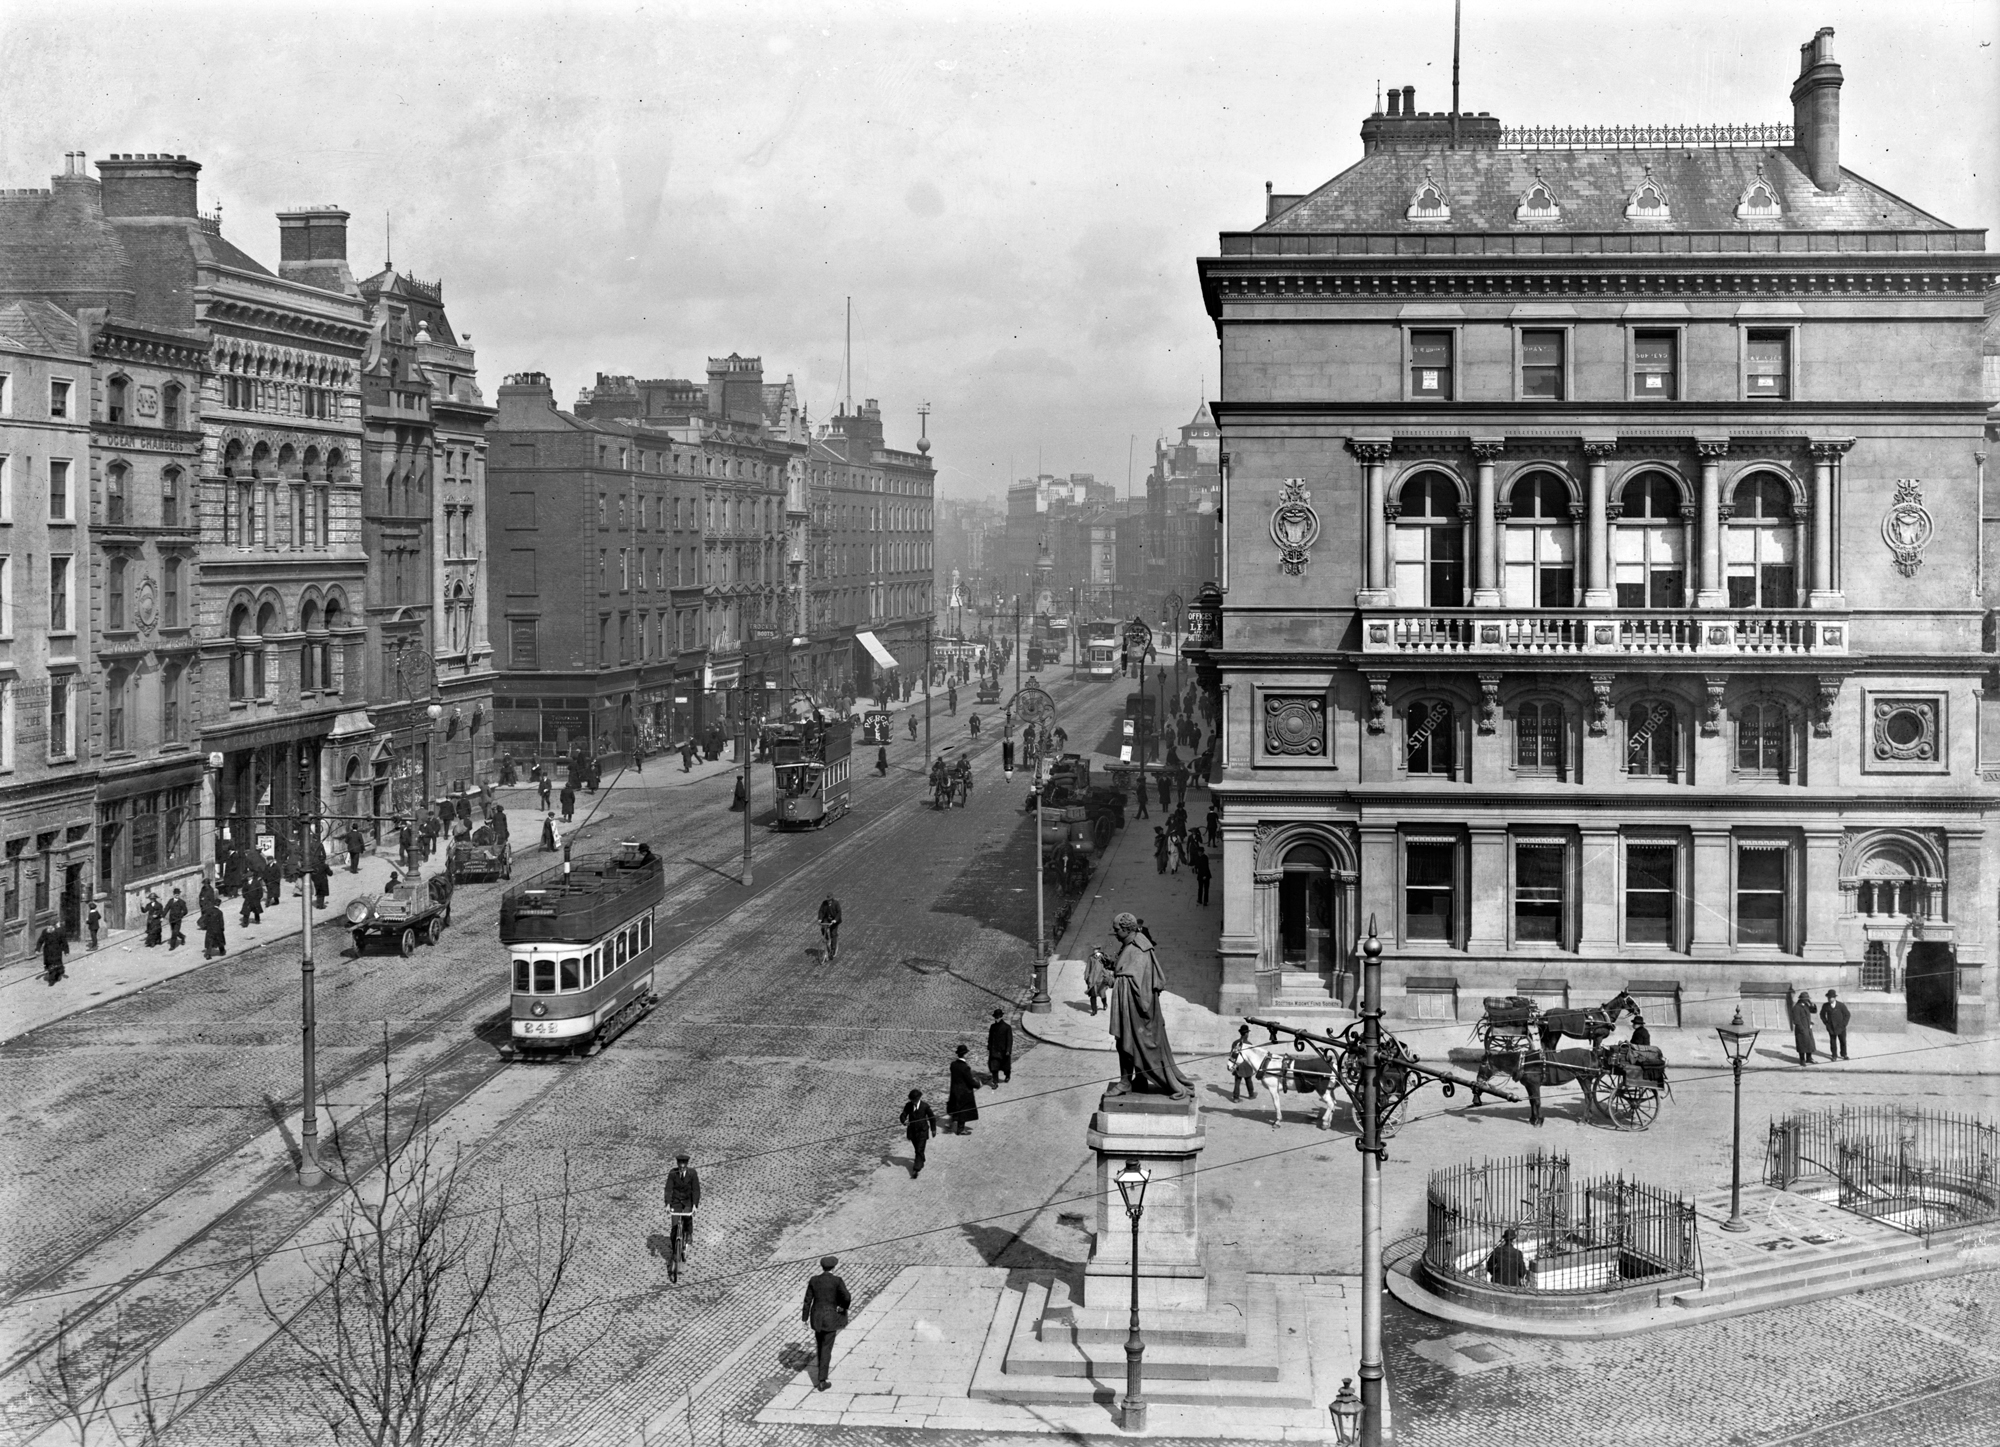 Westmoreland Street (looking to O'Connell Bridge, including a tram), Dublin City, Co. Dublin